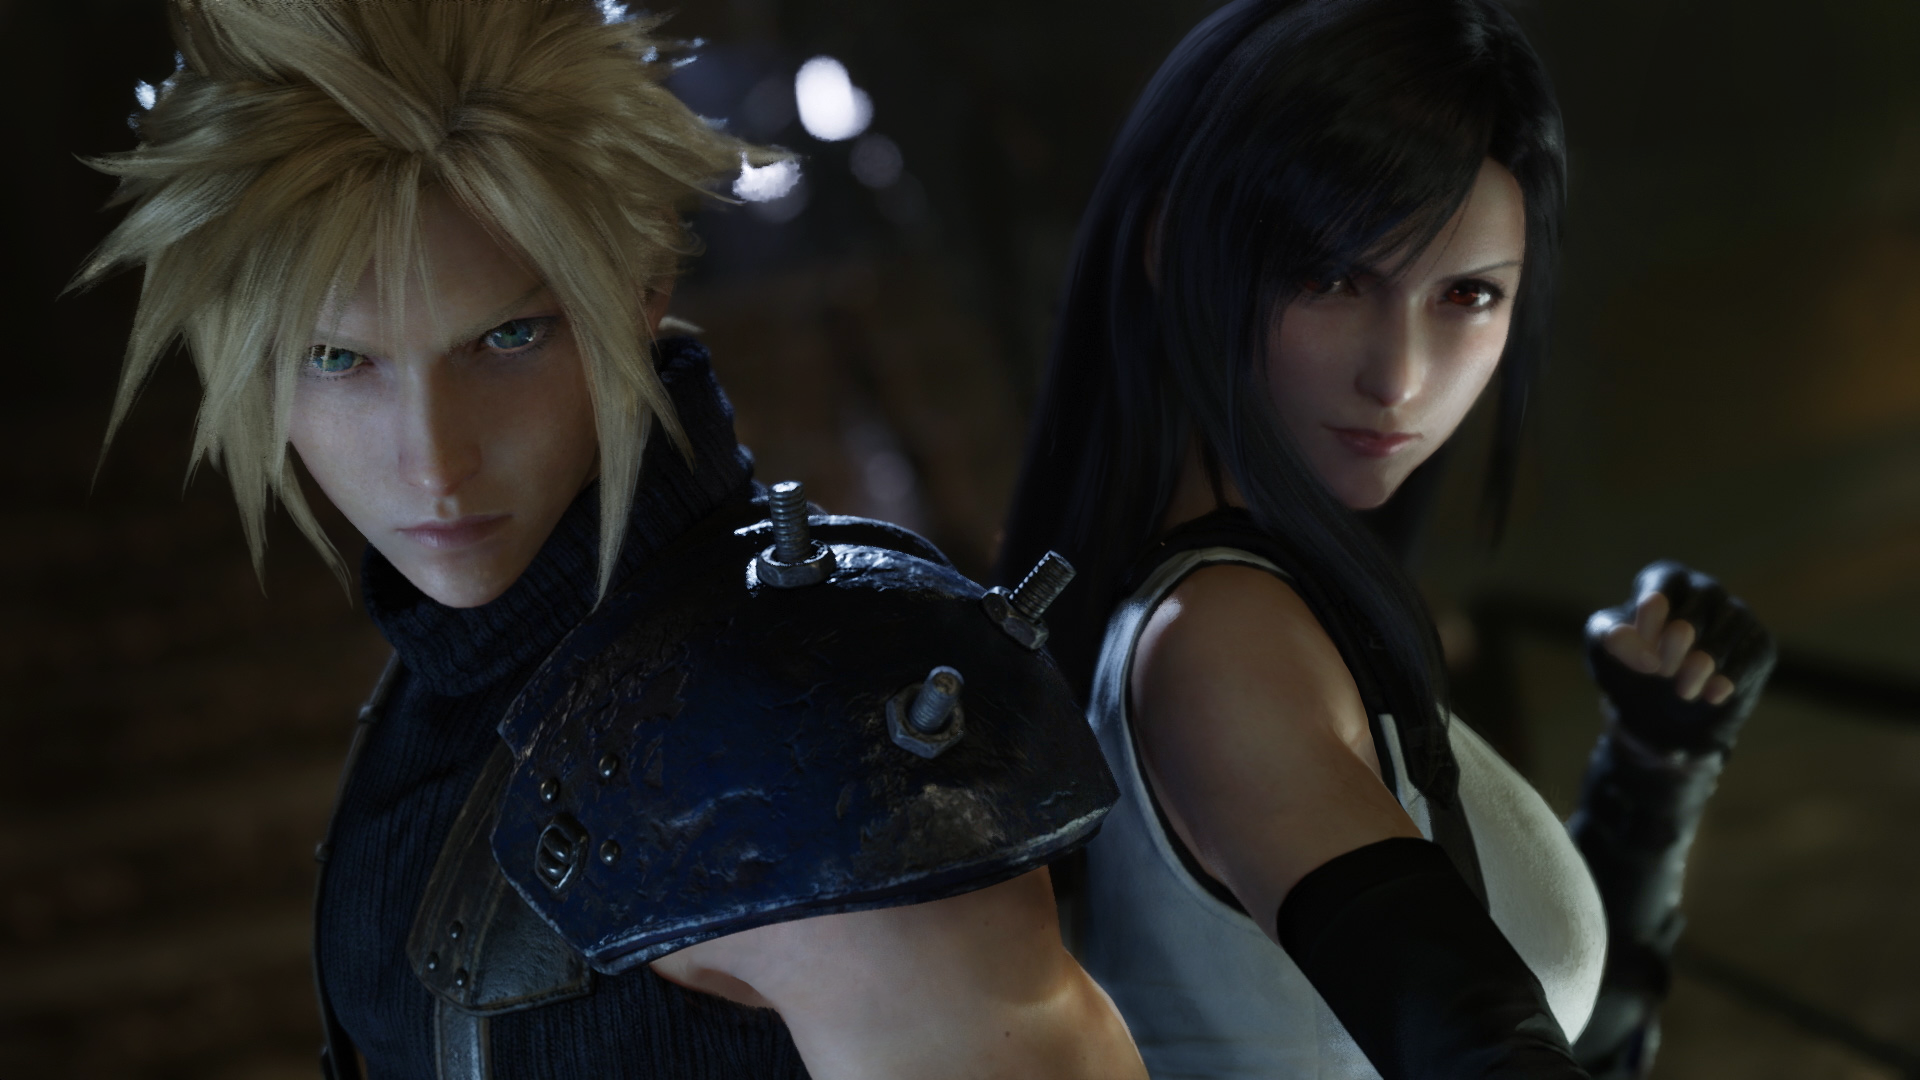 Final Fantasy 7 Remake has been delayed, but it's still coming soon